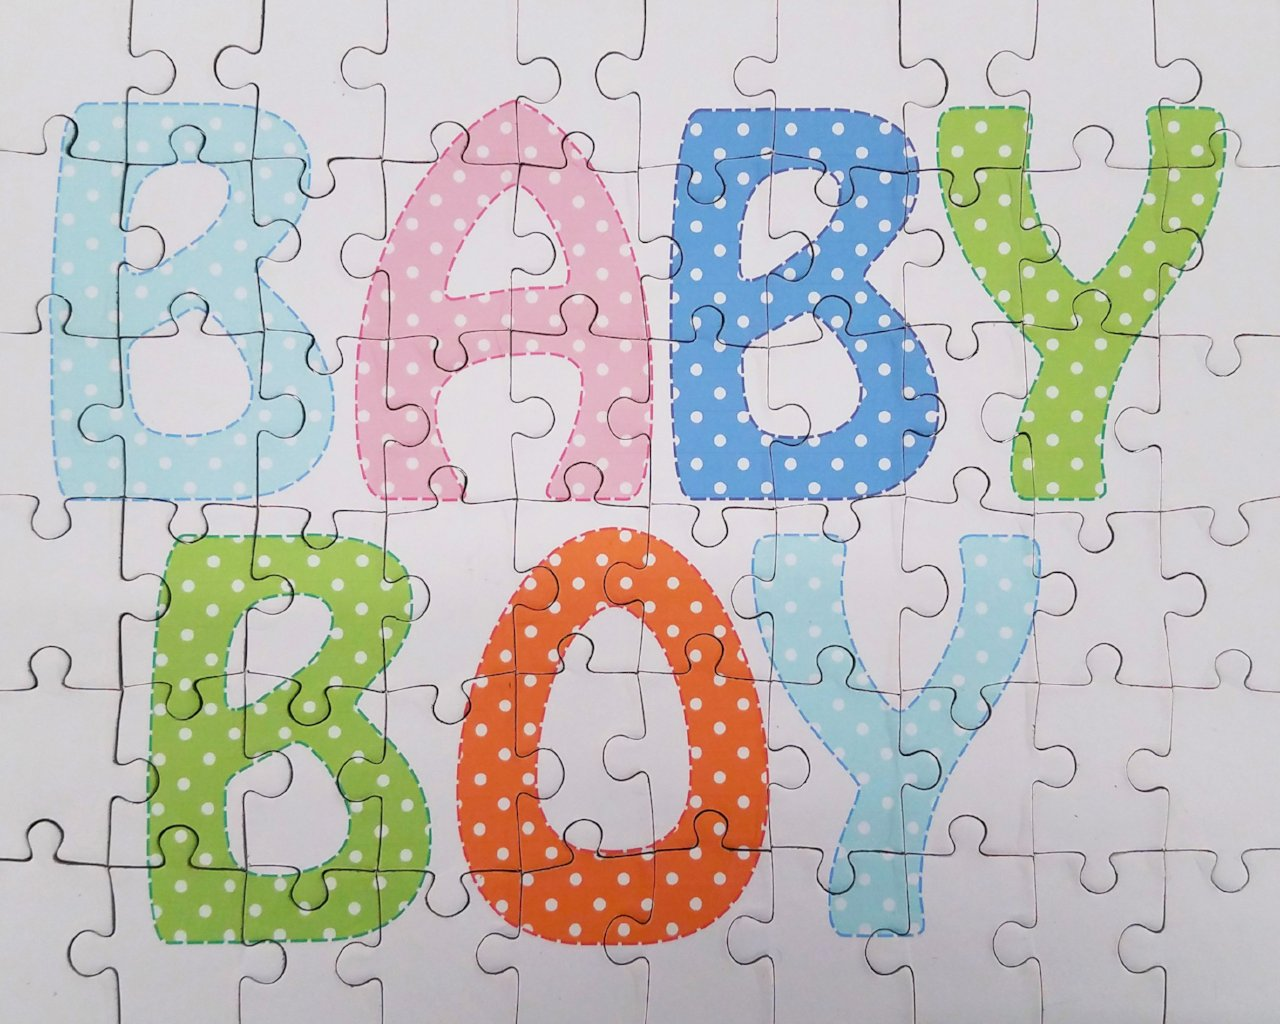 Gender Reveal Baby Boy Jigsaw Puzzle in 60 large pieces - The Missing Piece Puzzle Company